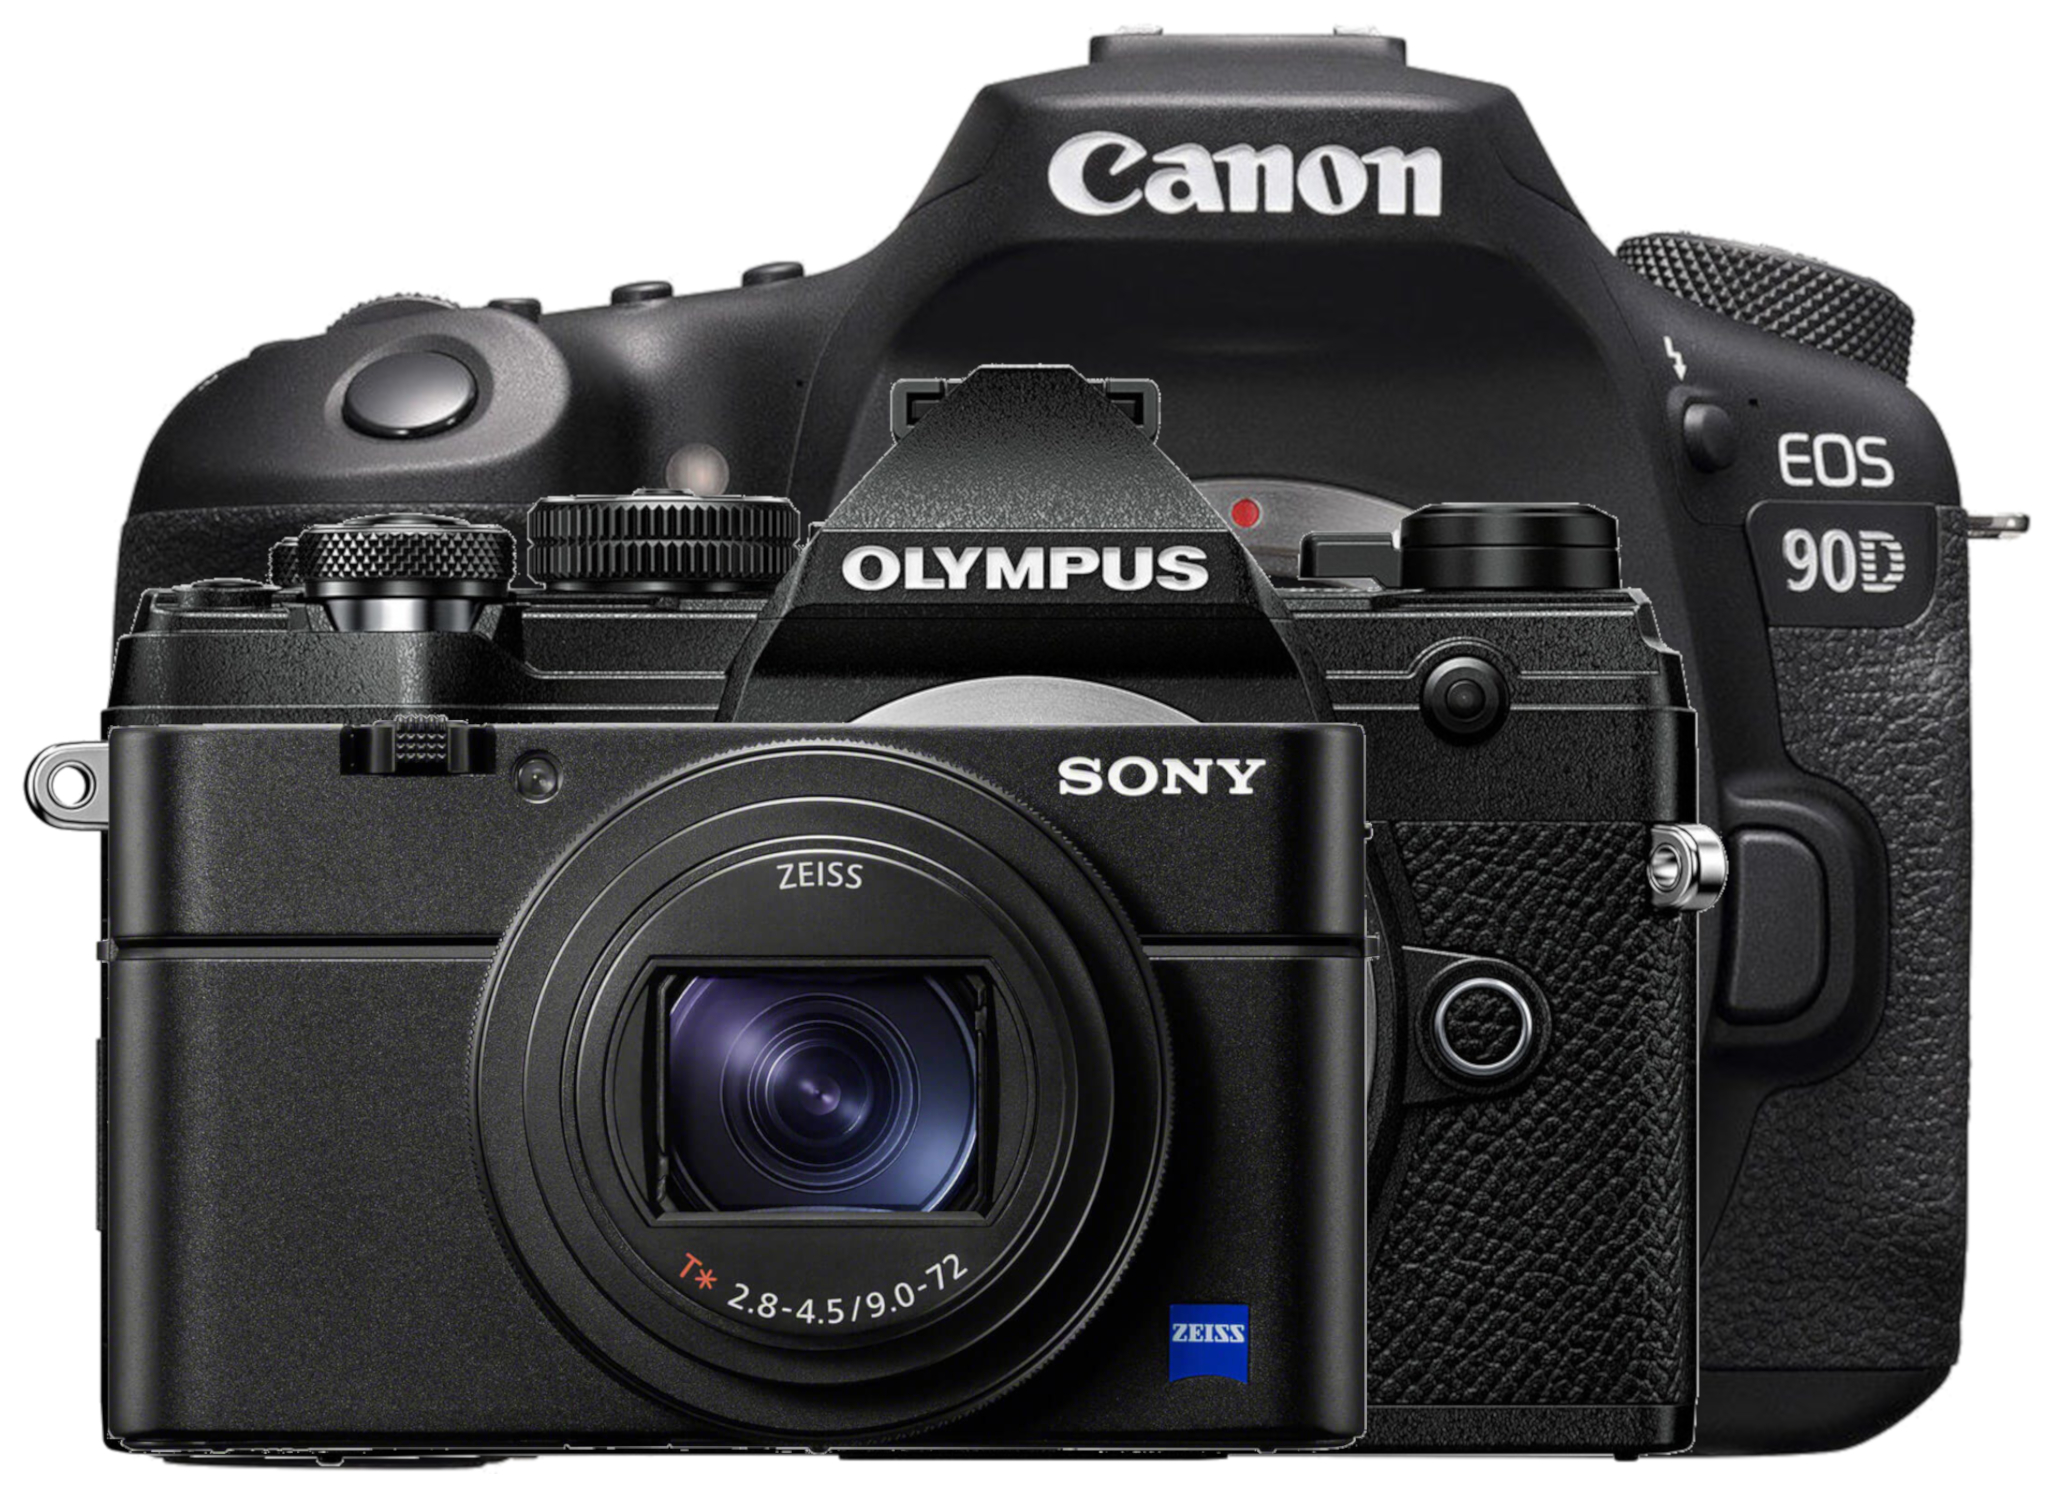 Olympus E-M5 Mark III vs Canon 90D vs Sony RX100 VII - 6